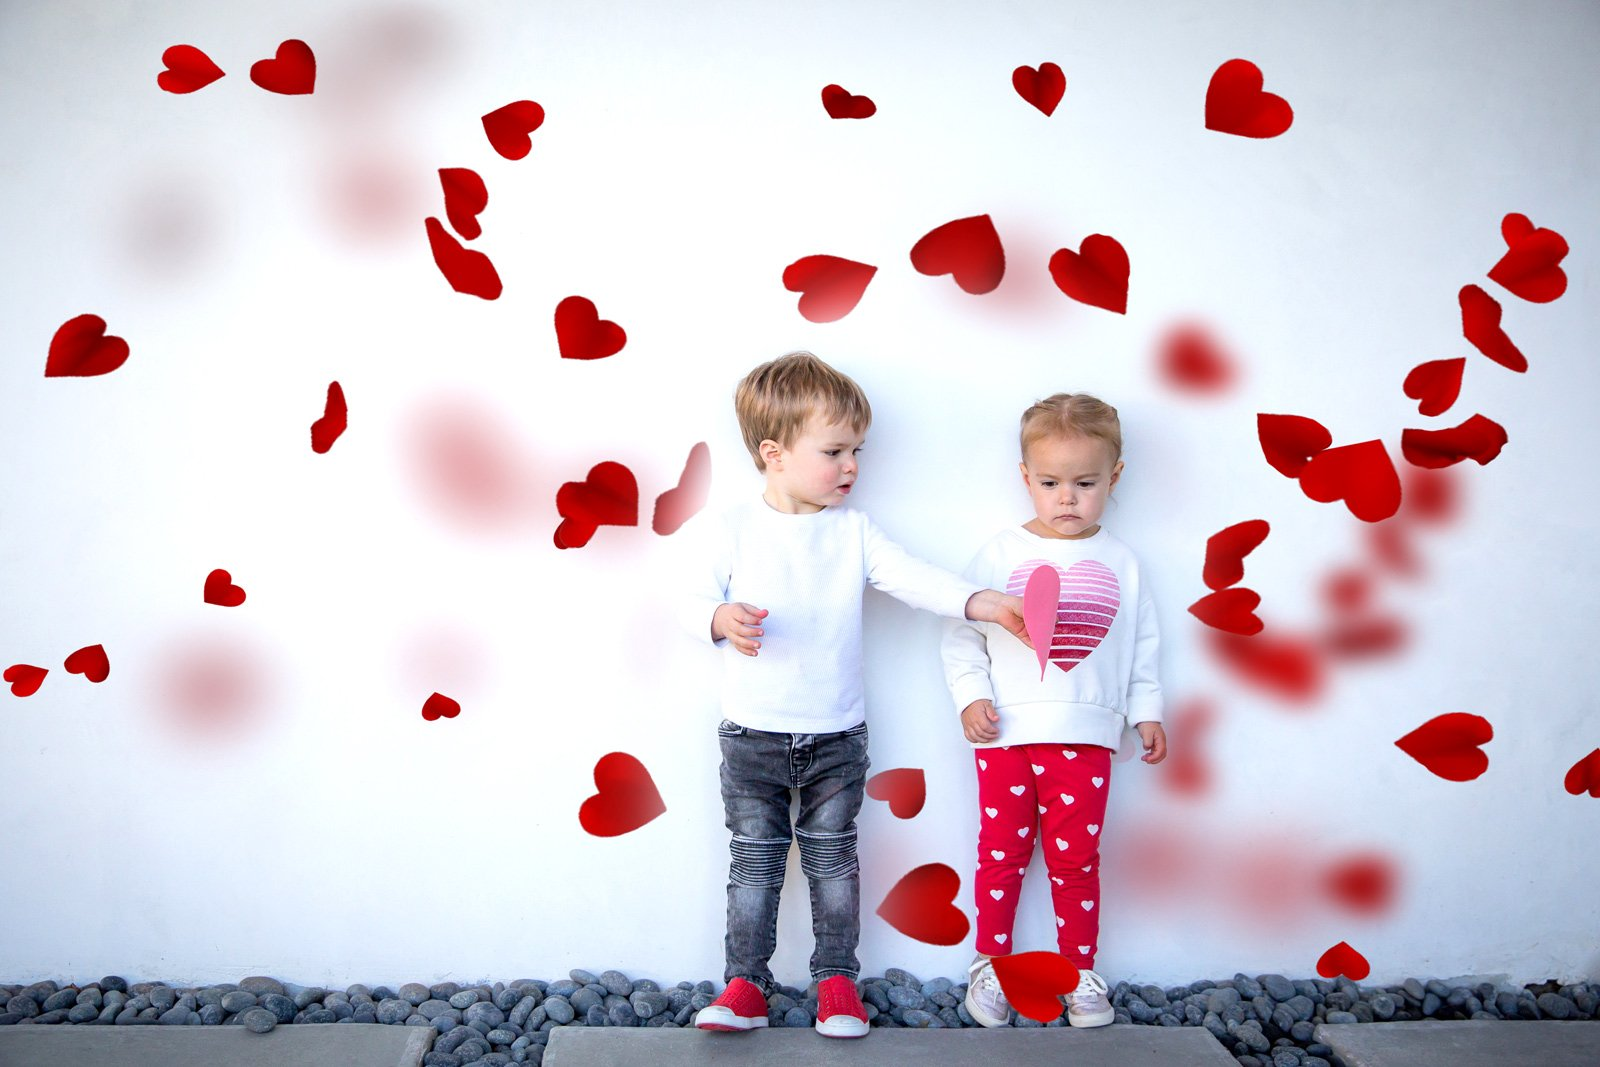 Nicole-varner-kids-standing-amongst-floating-hearts_nvarner